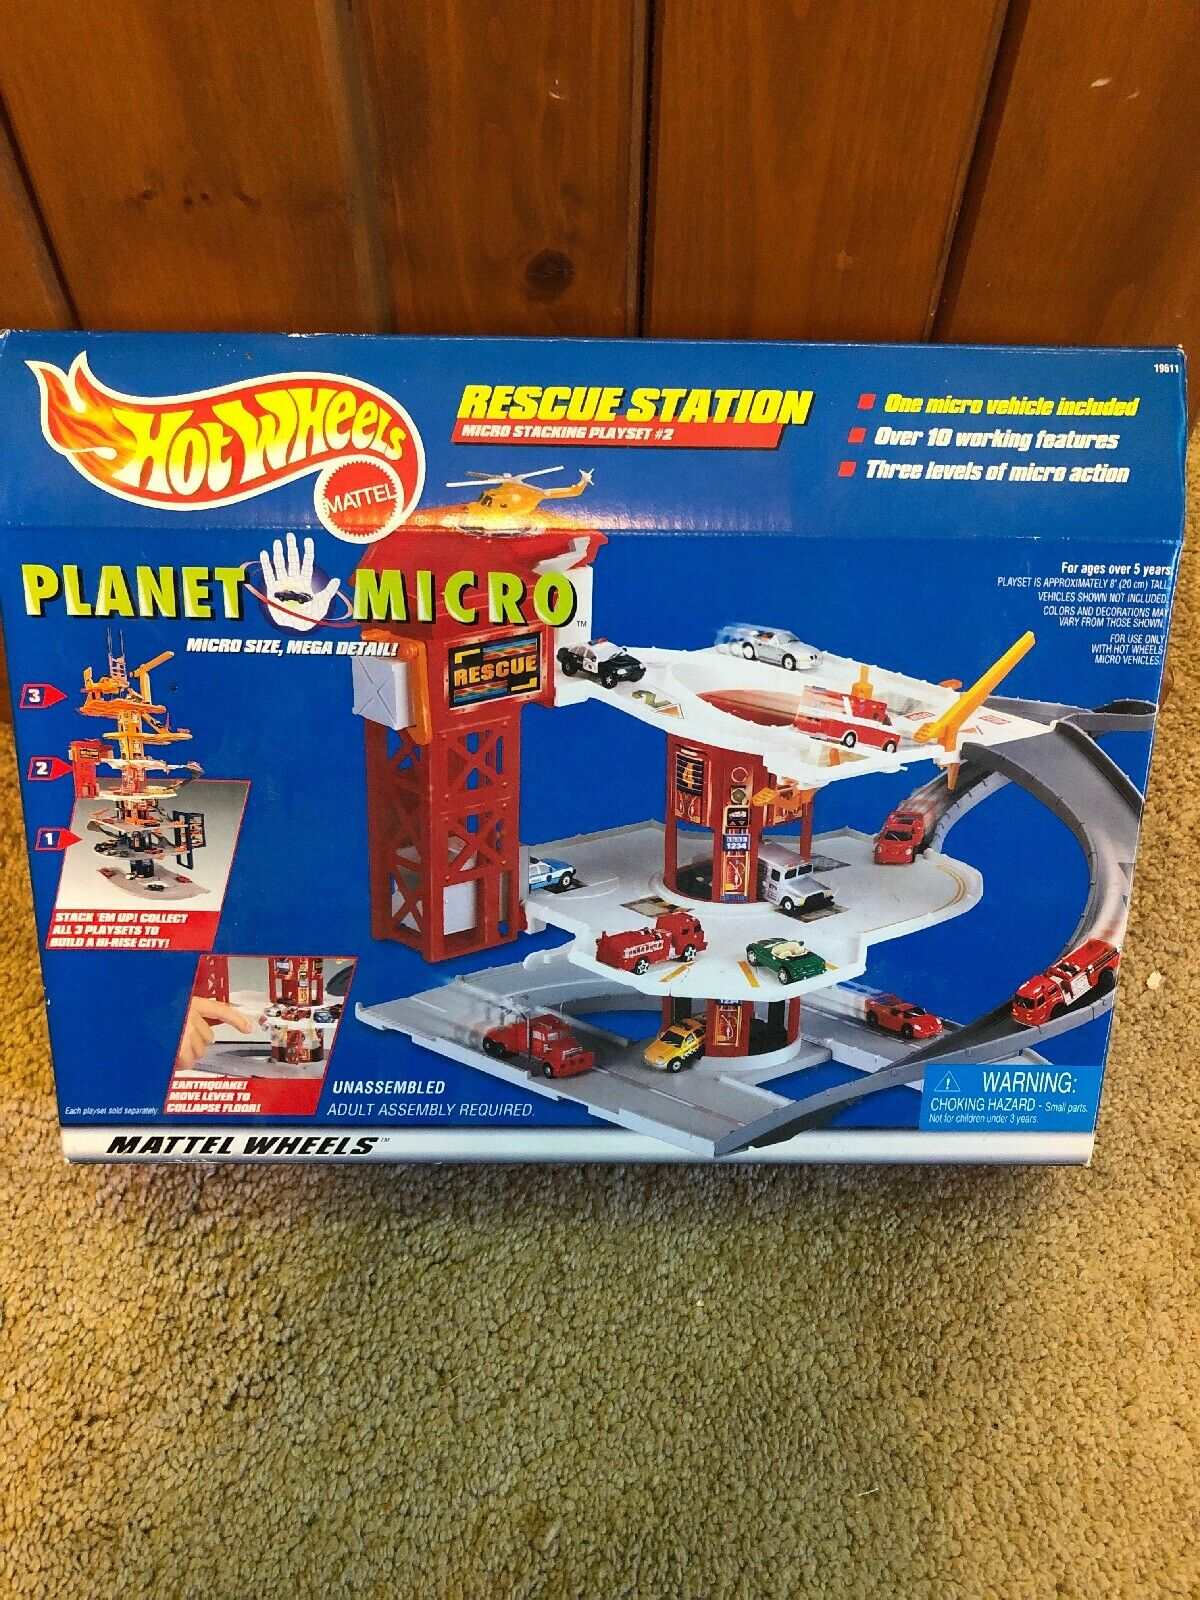 1997 RARE Hot Wheels Planet Micro Rescue Station-New in Box